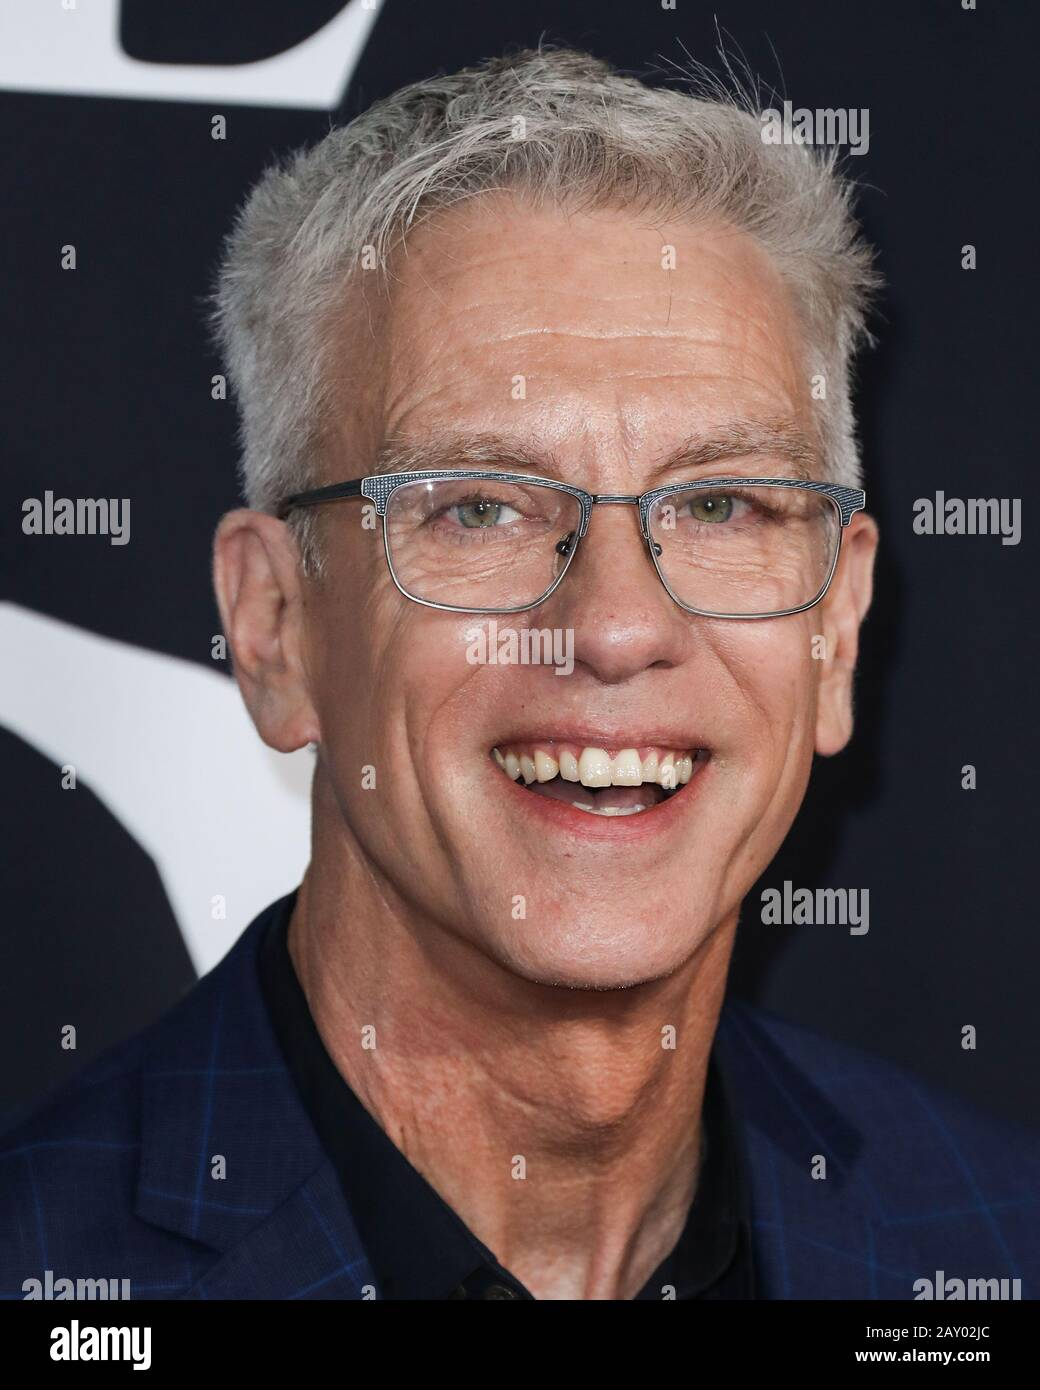 Hollywood, United States. 13th Feb, 2020. HOLLYWOOD, LOS ANGELES, CALIFORNIA, USA - FEBRUARY 13: Chris Sanders arrives at the World Premiere Of 20th Century Studios' 'The Call Of The Wild' held at the El Capitan Theatre on February 13, 2020 in Hollywood, Los Angeles, California, United States. (Photo by Xavier Collin/Image Press Agency) Credit: Image Press Agency/Alamy Live News Stock Photo